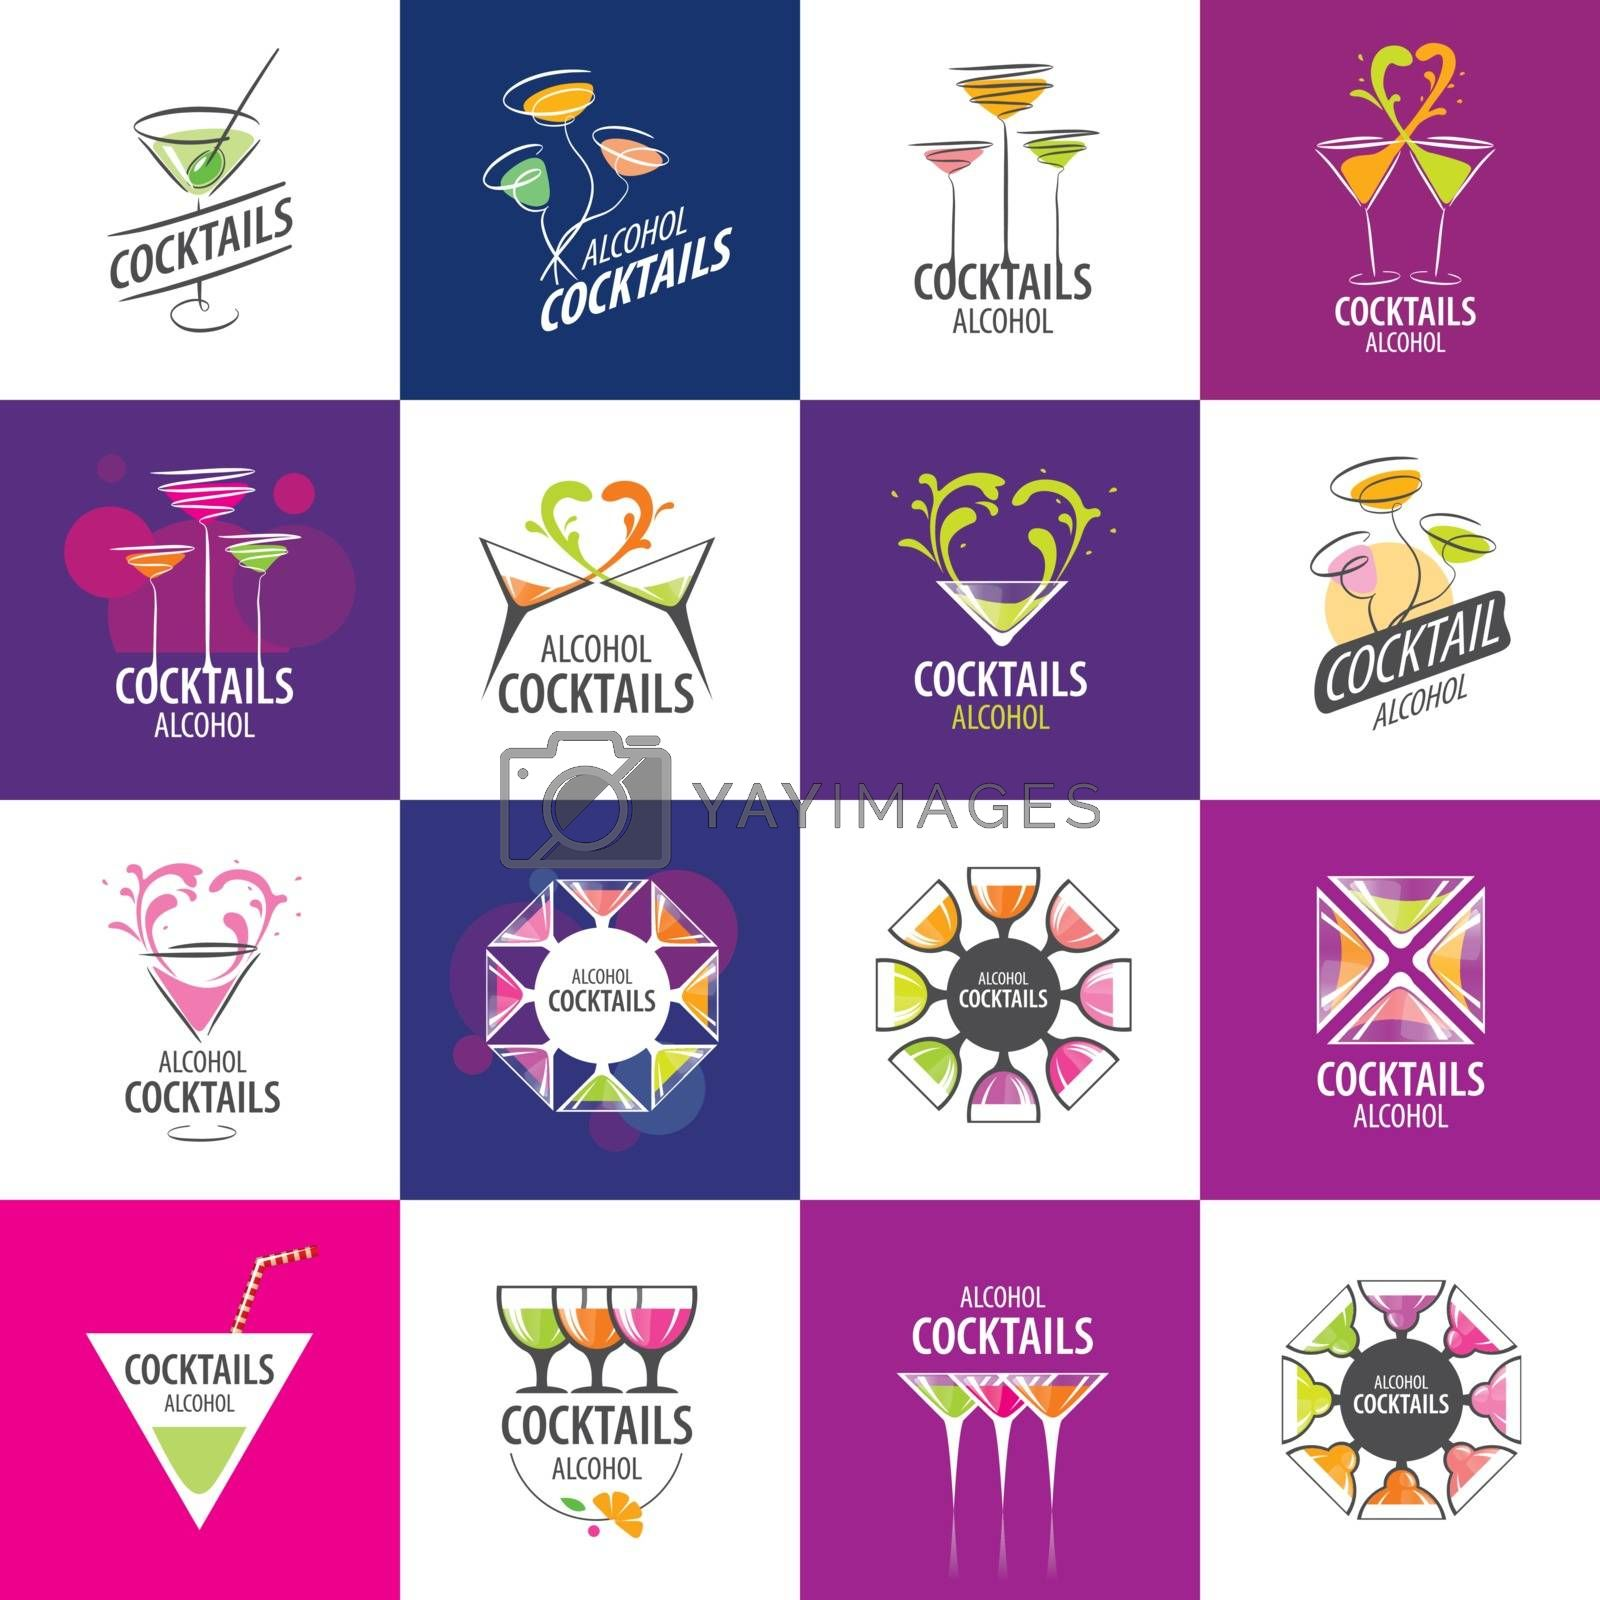 alcoholic cocktails logo by butenkow